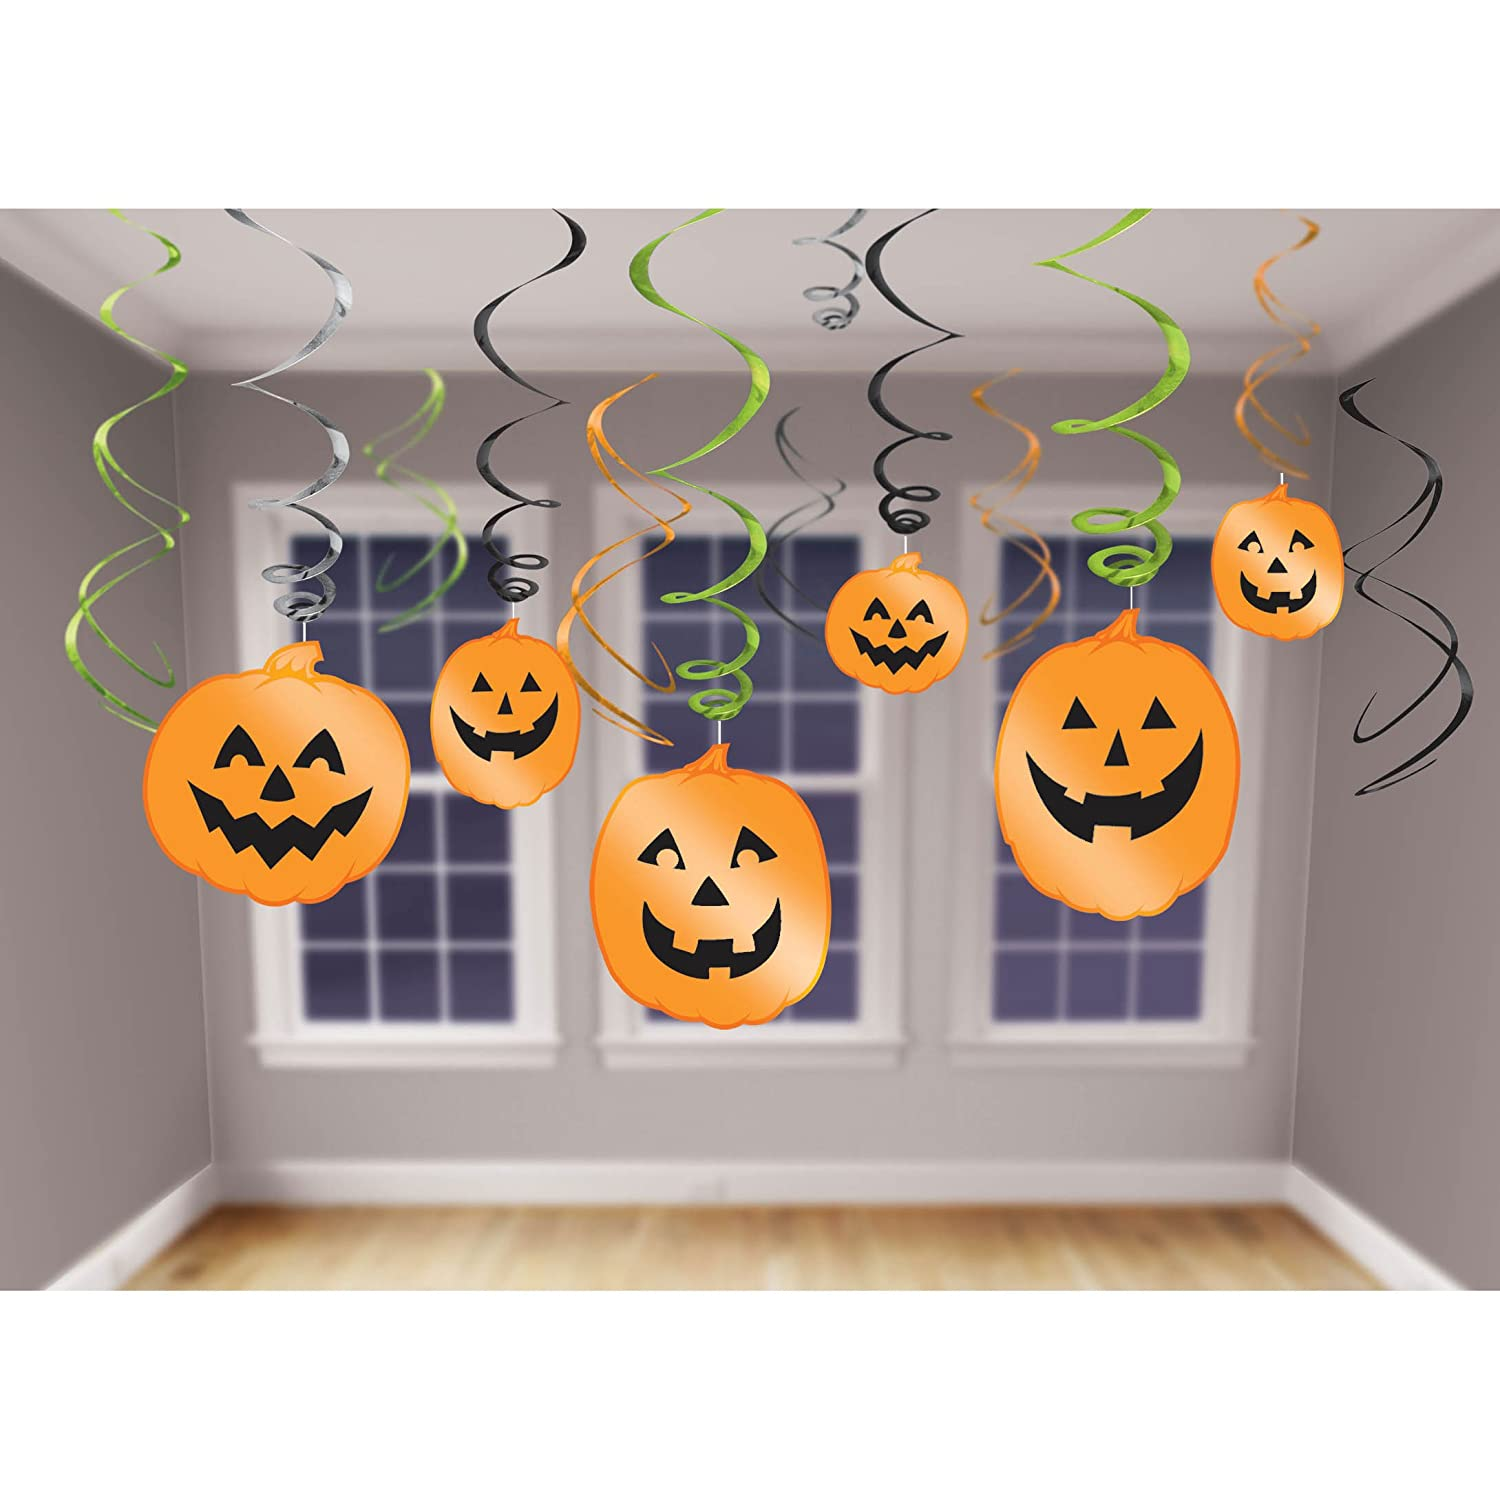 amscan international 679467 decoration hanging swirl halloween party set amazoncouk toys games - Halloween Hanging Decorations